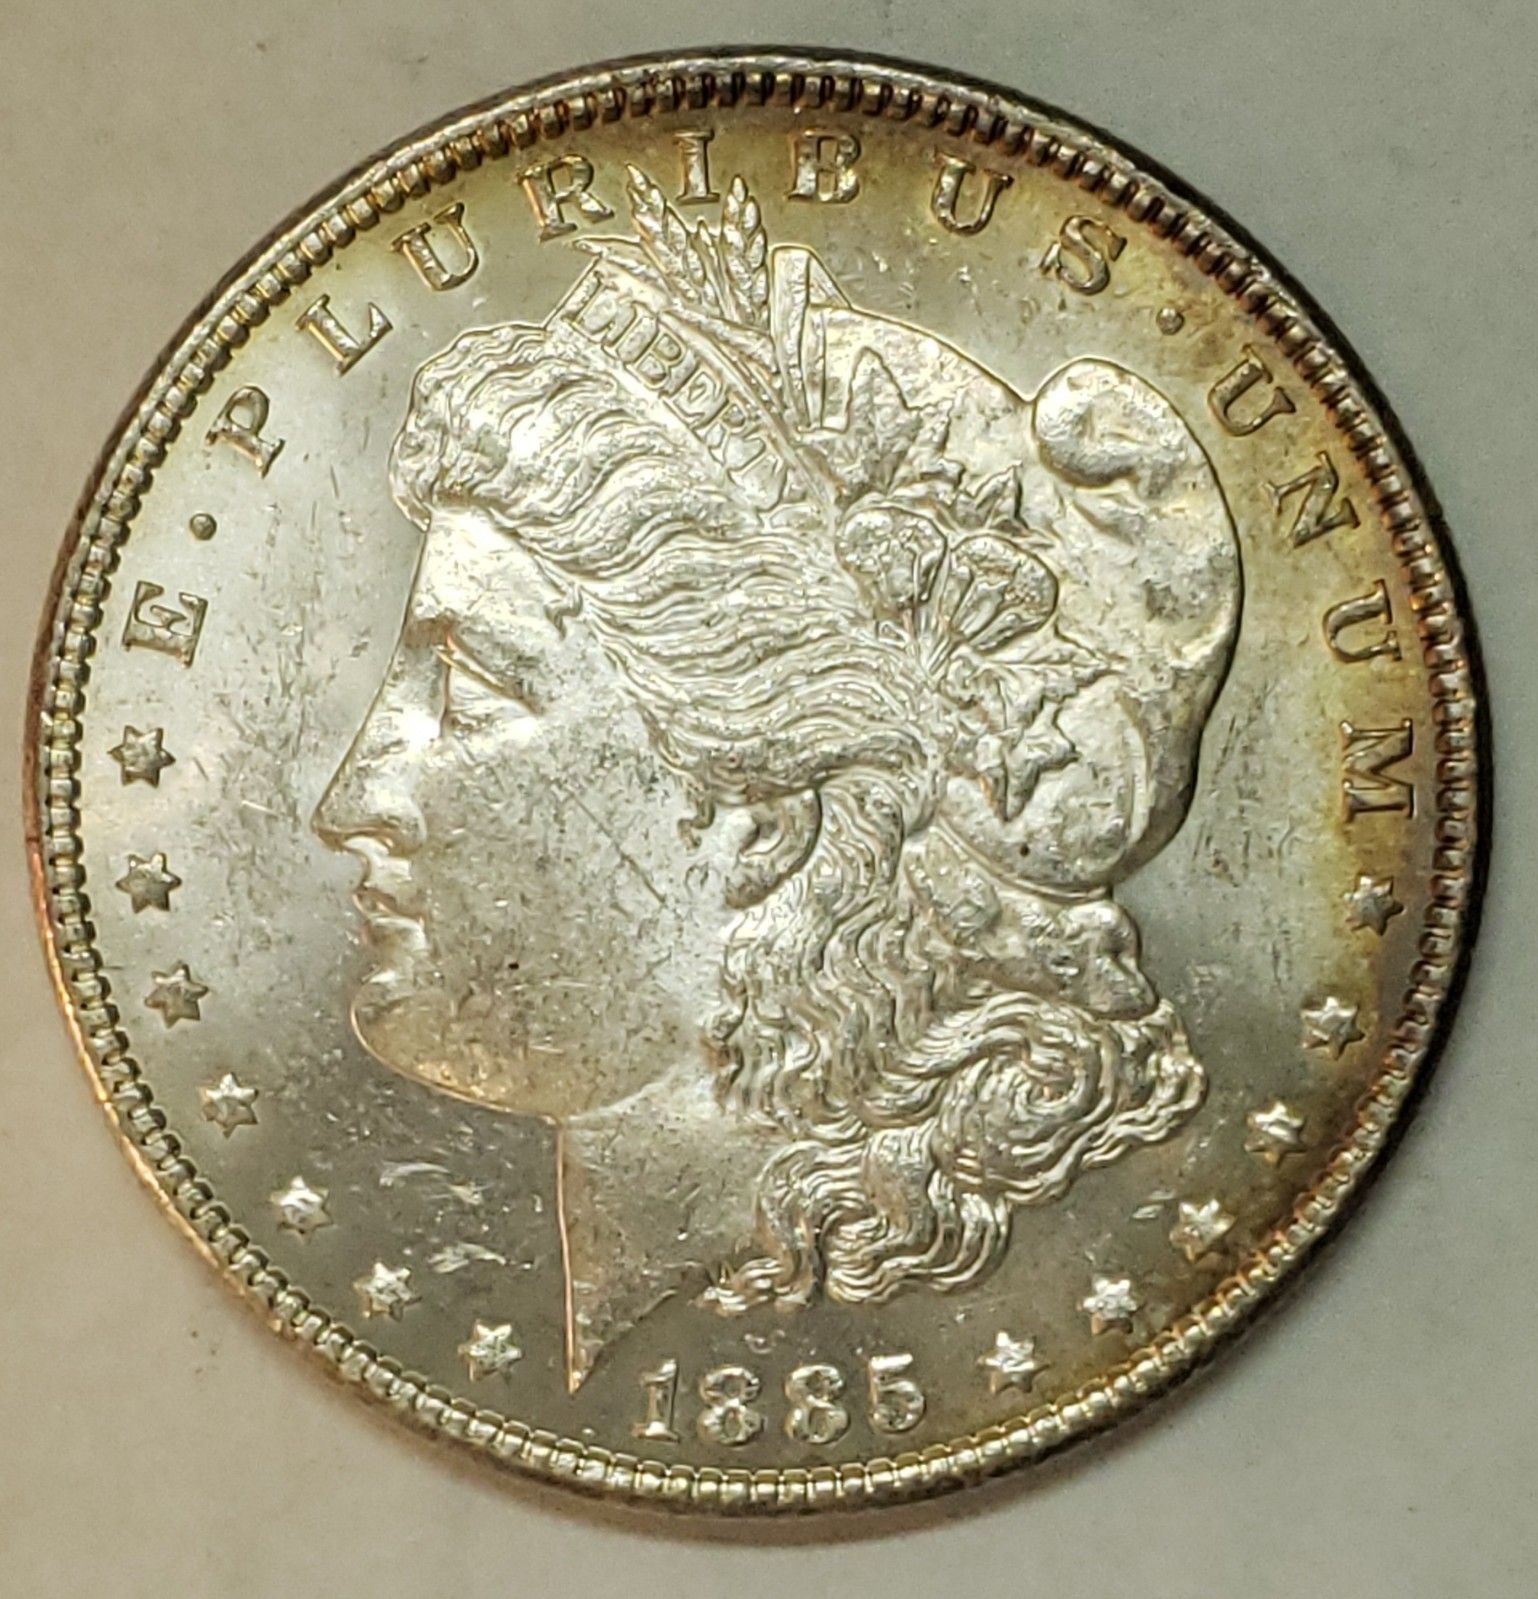 1885 $1 Morgan Silver Dollar Coin Lot # E 100